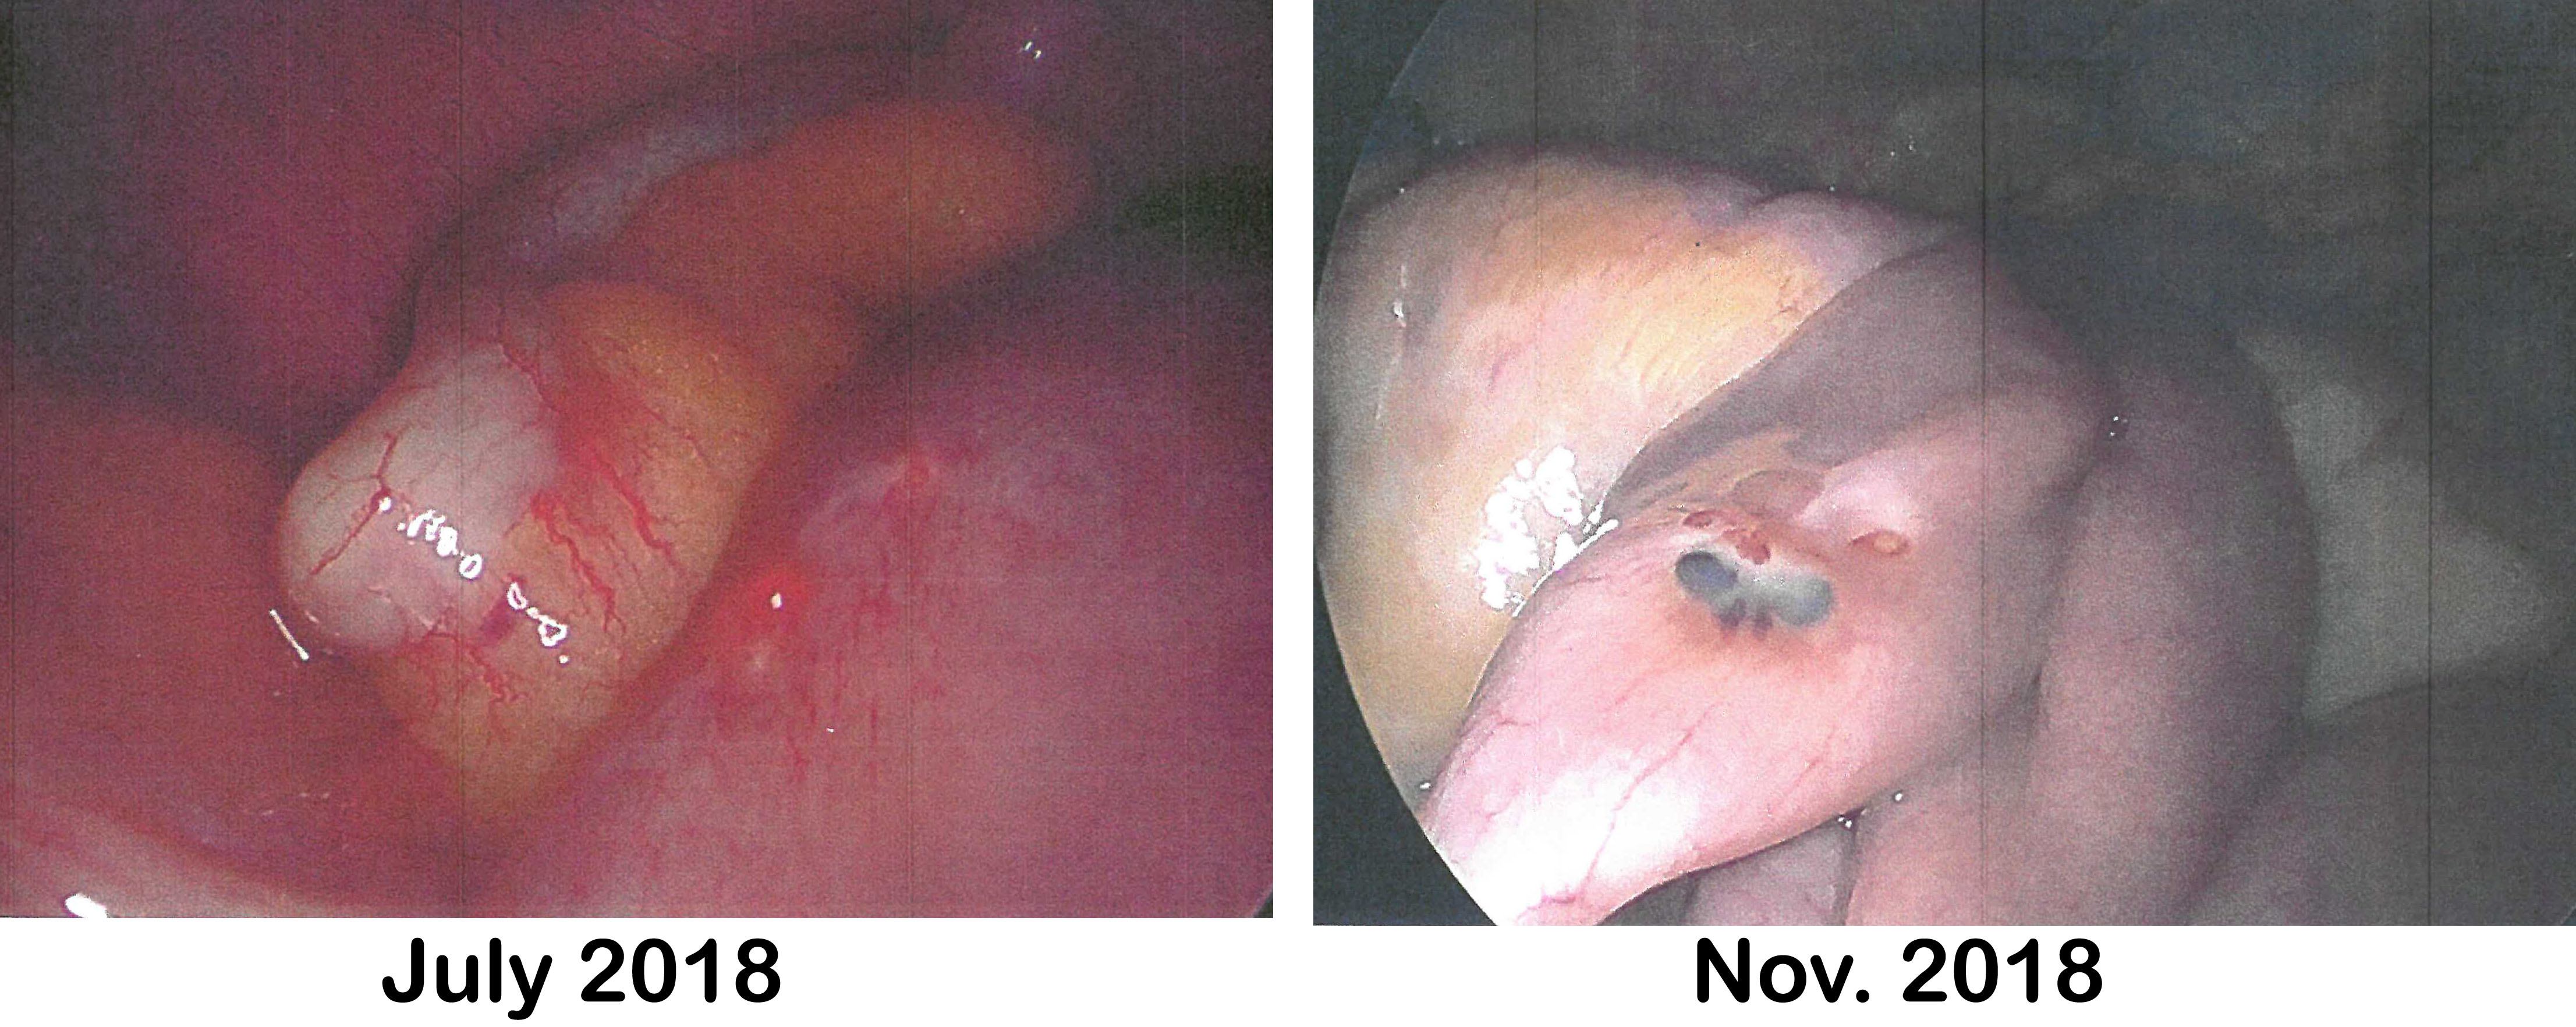 Comparison photos of July 2018 and November 2018 Endo lesions on bowel